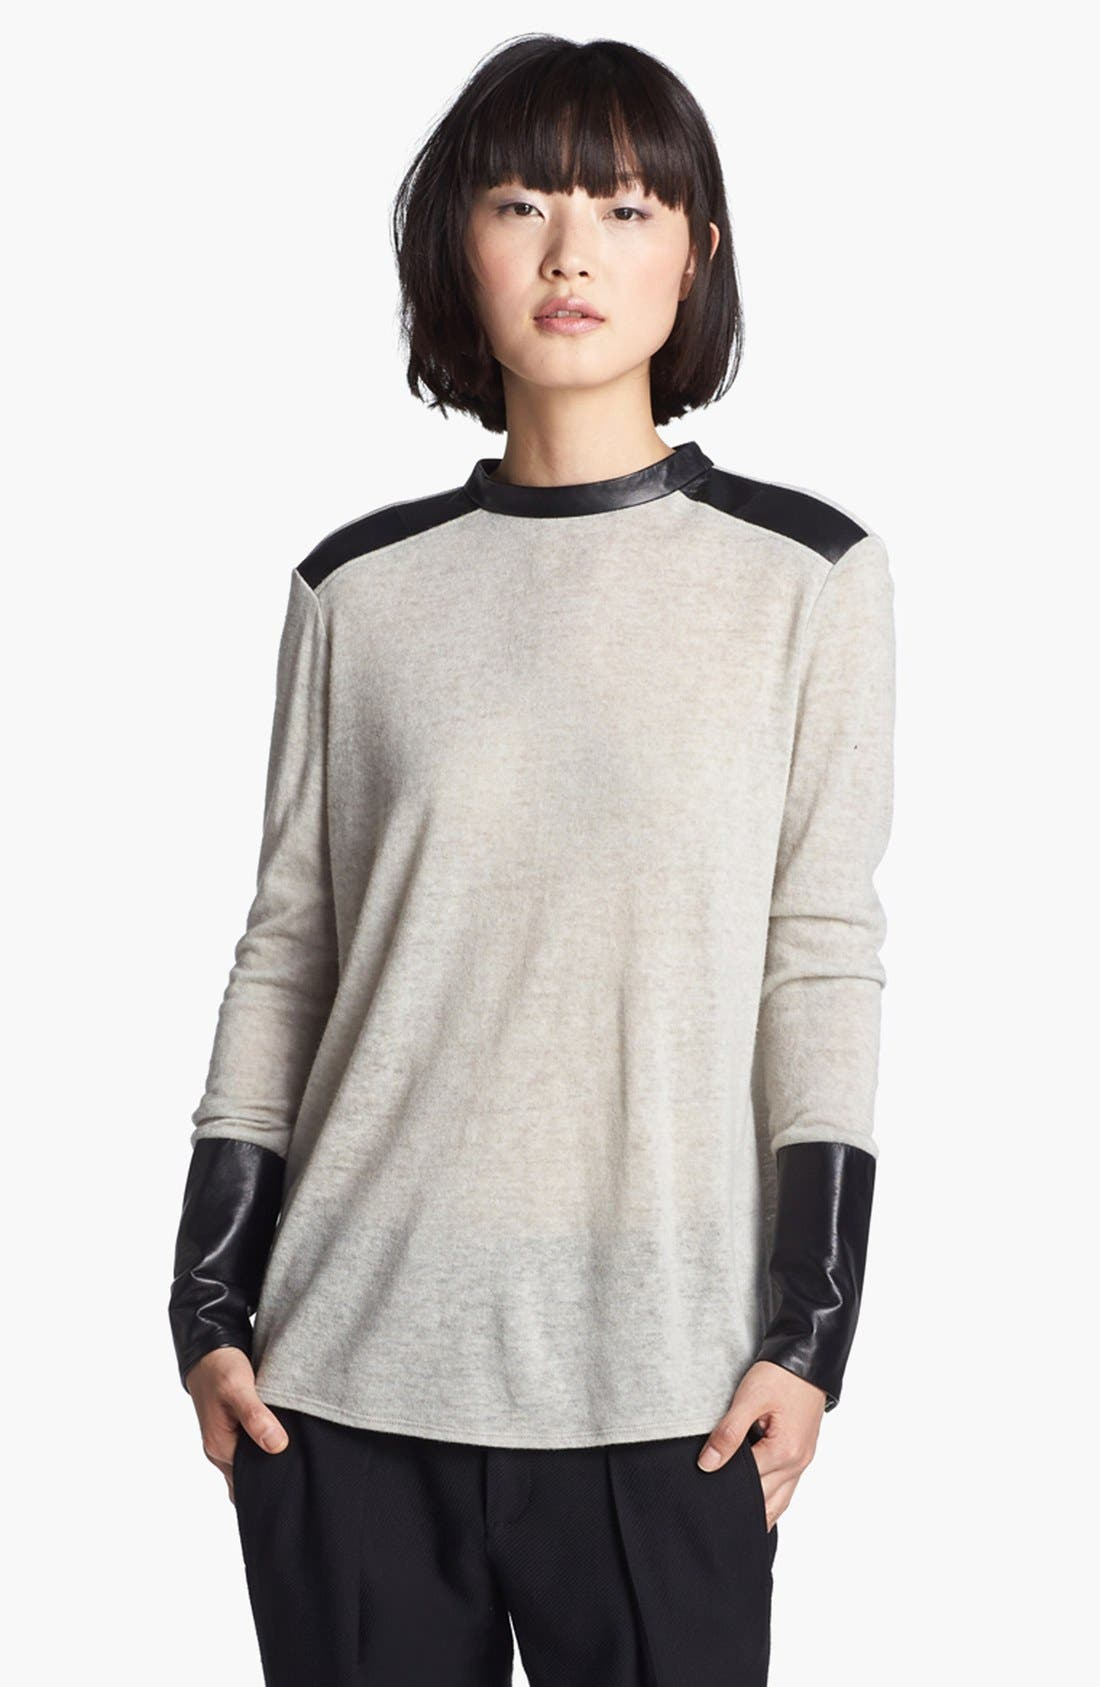 Main Image - Helmut Lang Leather Trim Knit Top